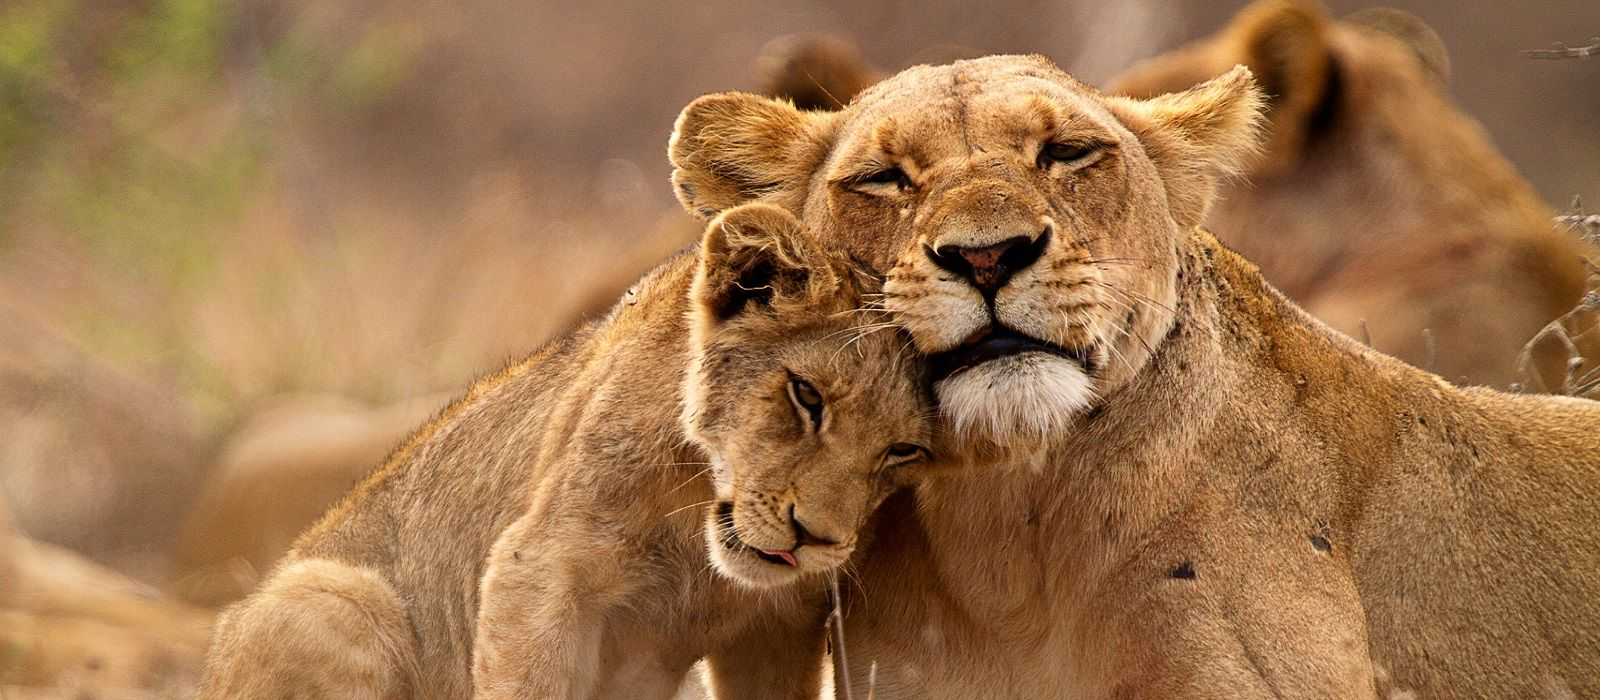 South Africa Tours & Trips